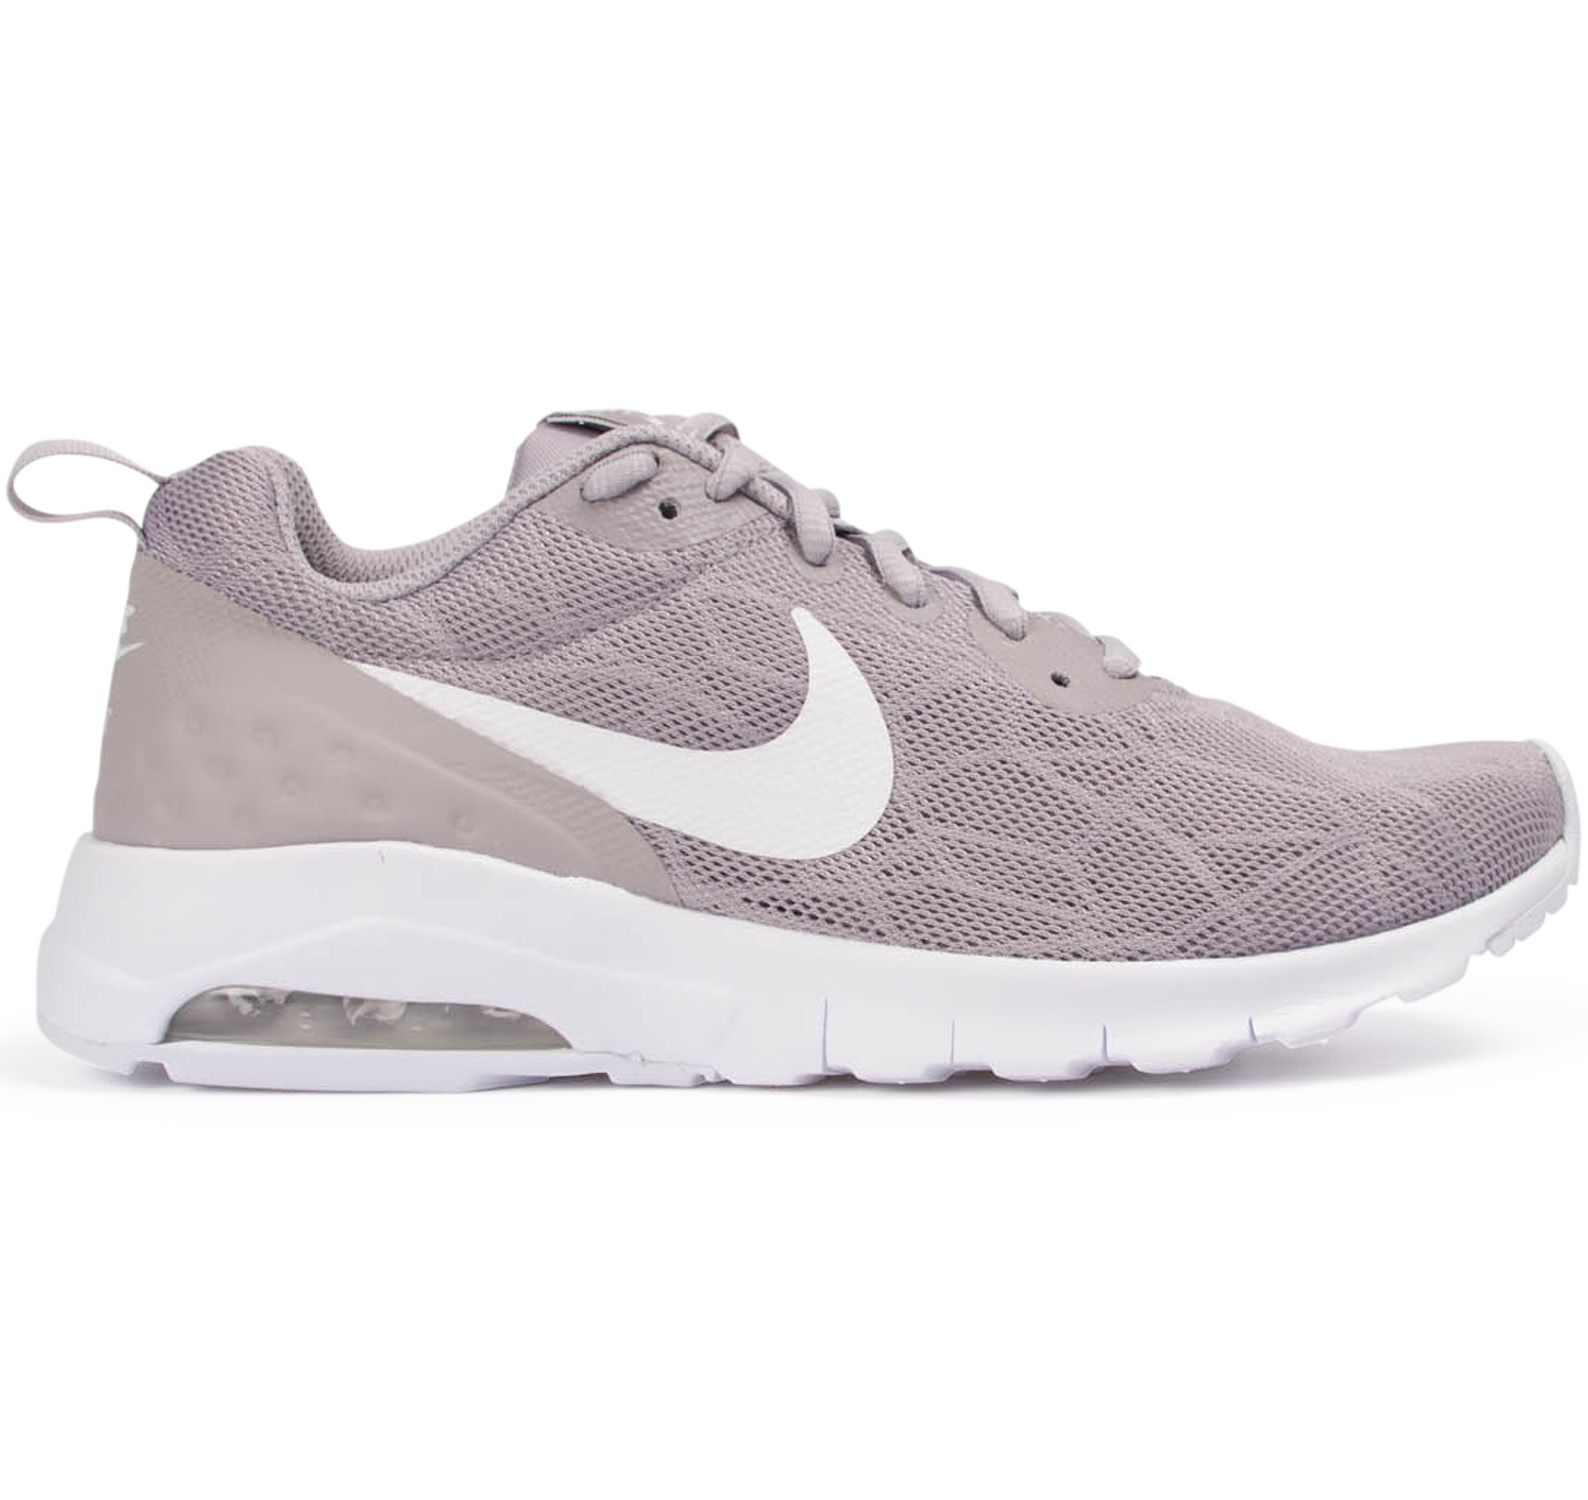 wmns nike air max motion lw se, atmosphere greywhite, 35,5